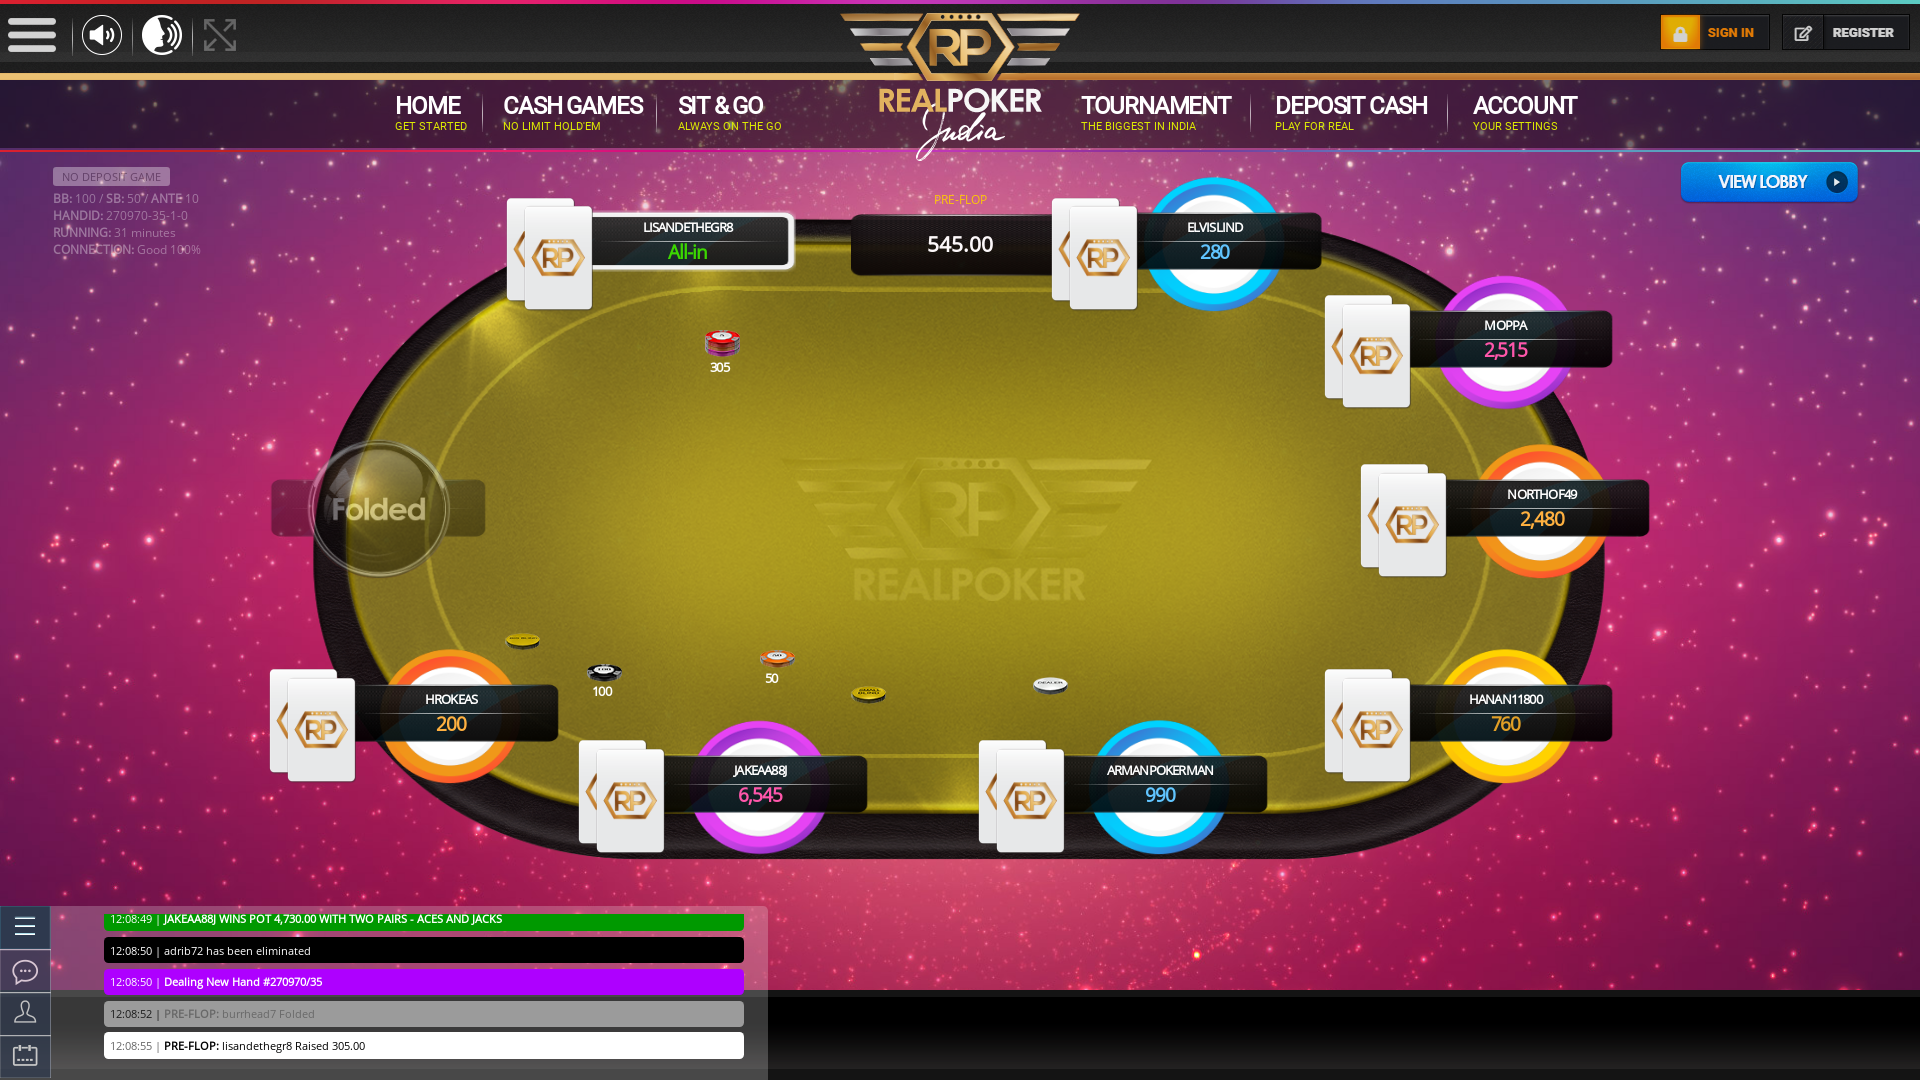 Online poker on a 10 player table in the 31st minute match up